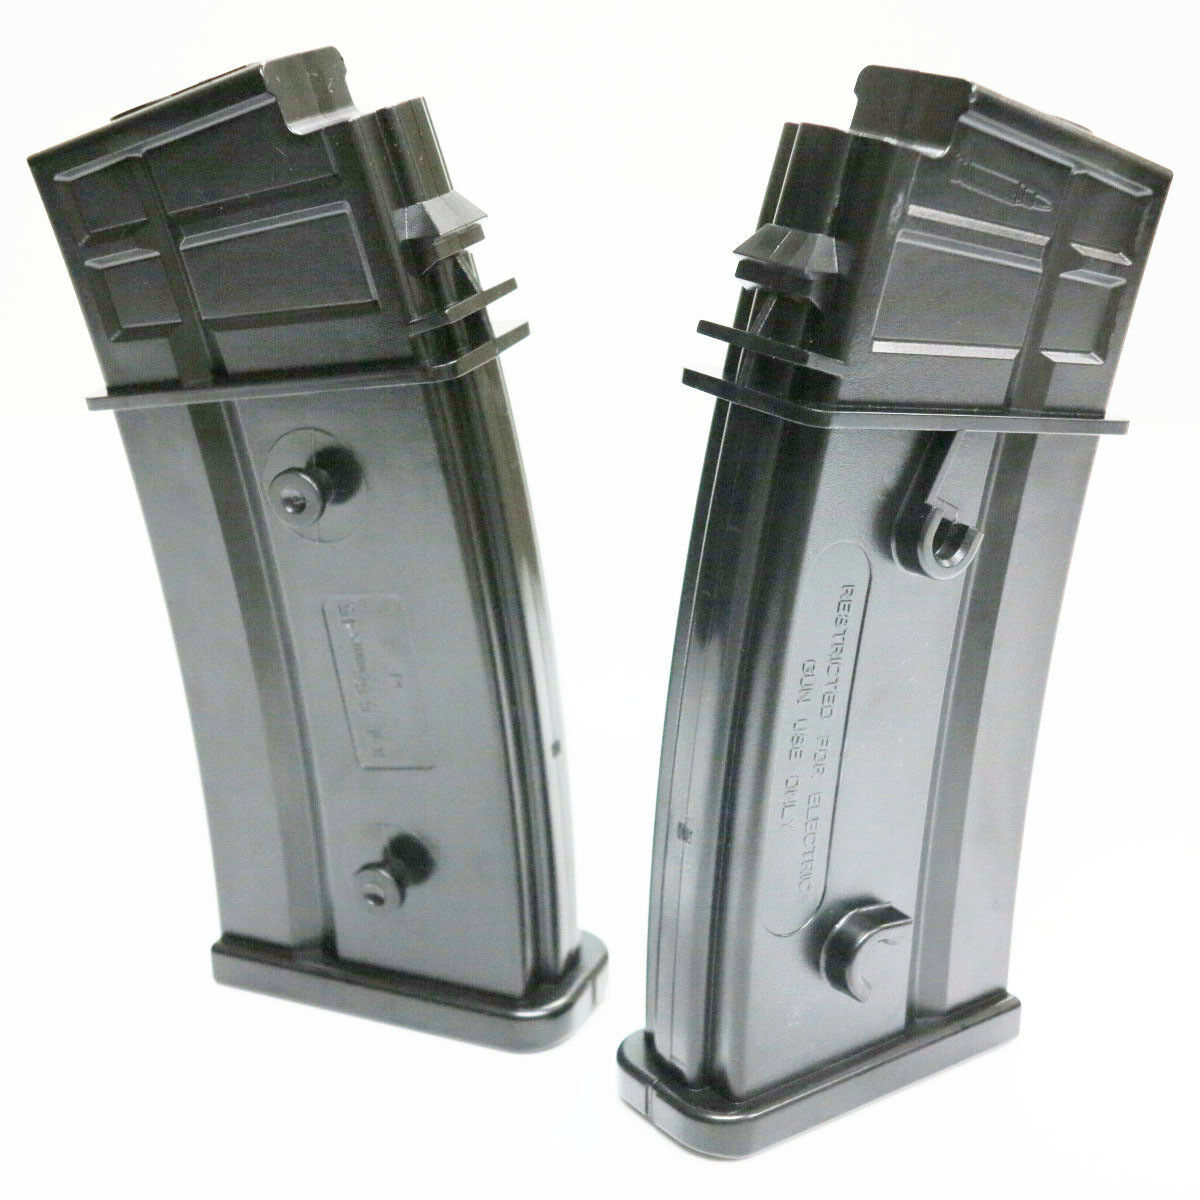 Airsoft 2pcs MAG 100rd Mid-Cap Magazine for Marui King Arms CA G36 G36C G36K AEG